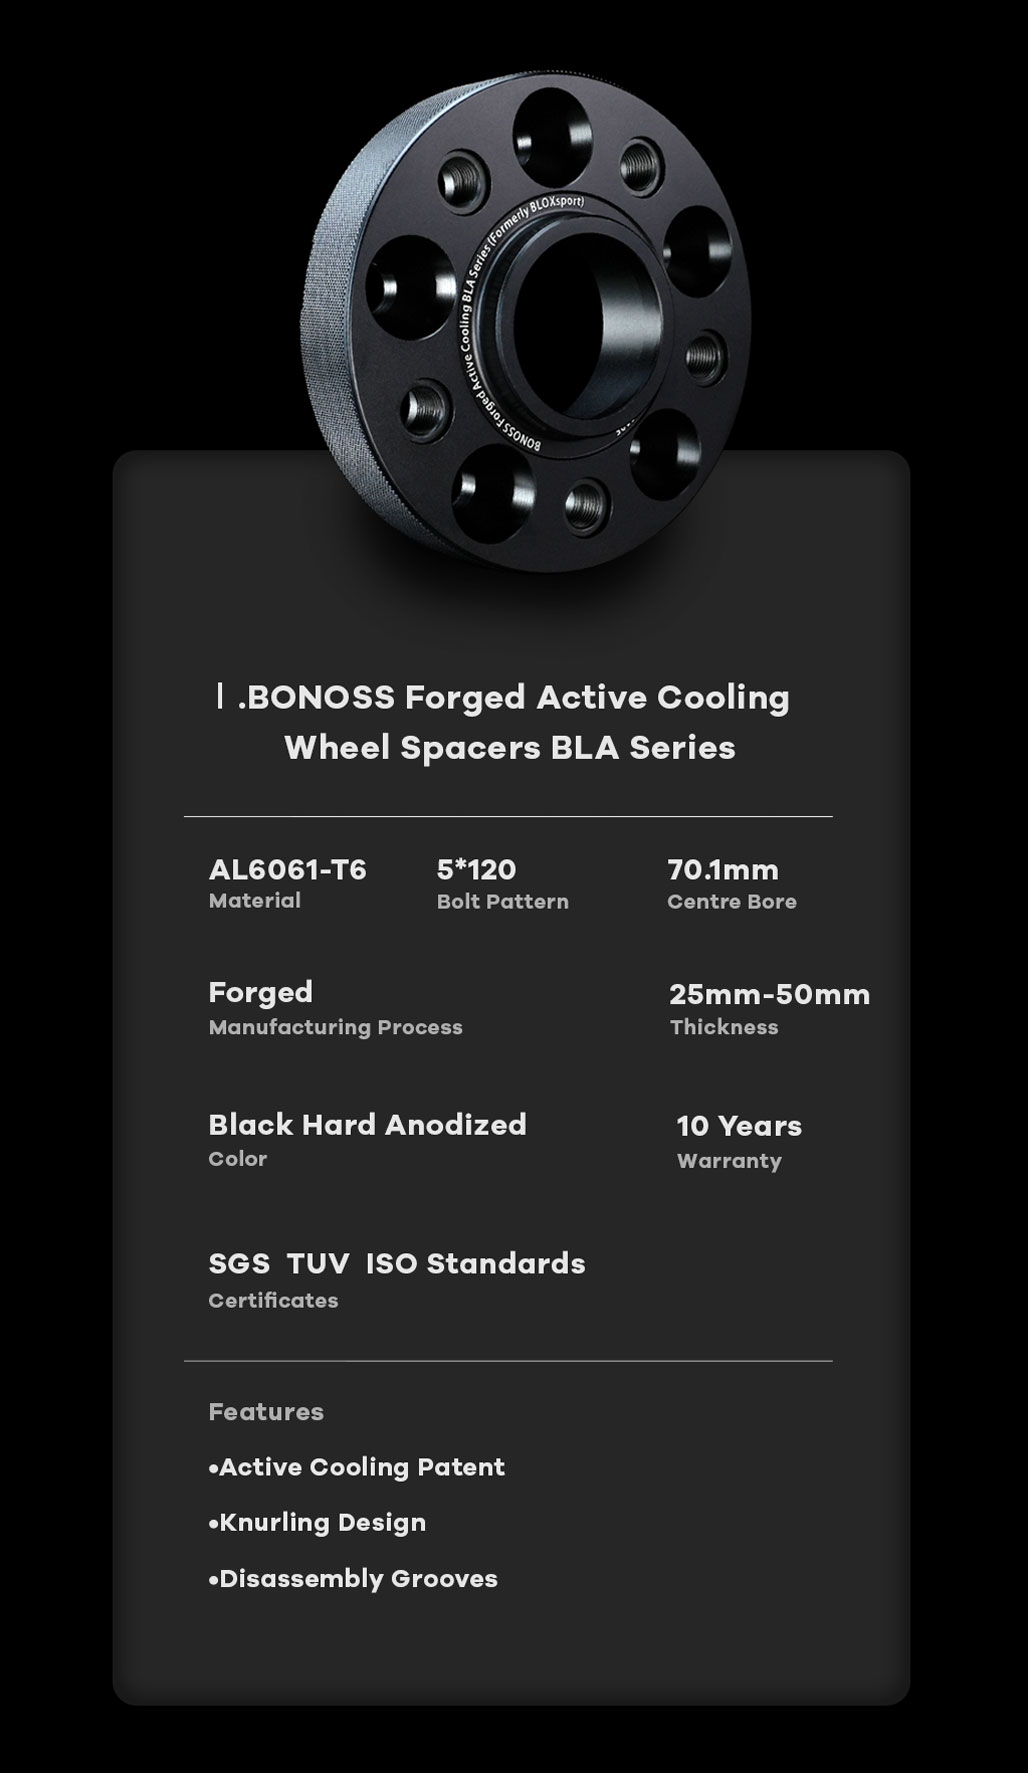 BONOSS Forged Active Cooling Hubcentric Wheel Spacers 5x120 Wheel Adapters 6061-T6 Aluminum CB70.1 Wheel Spacers